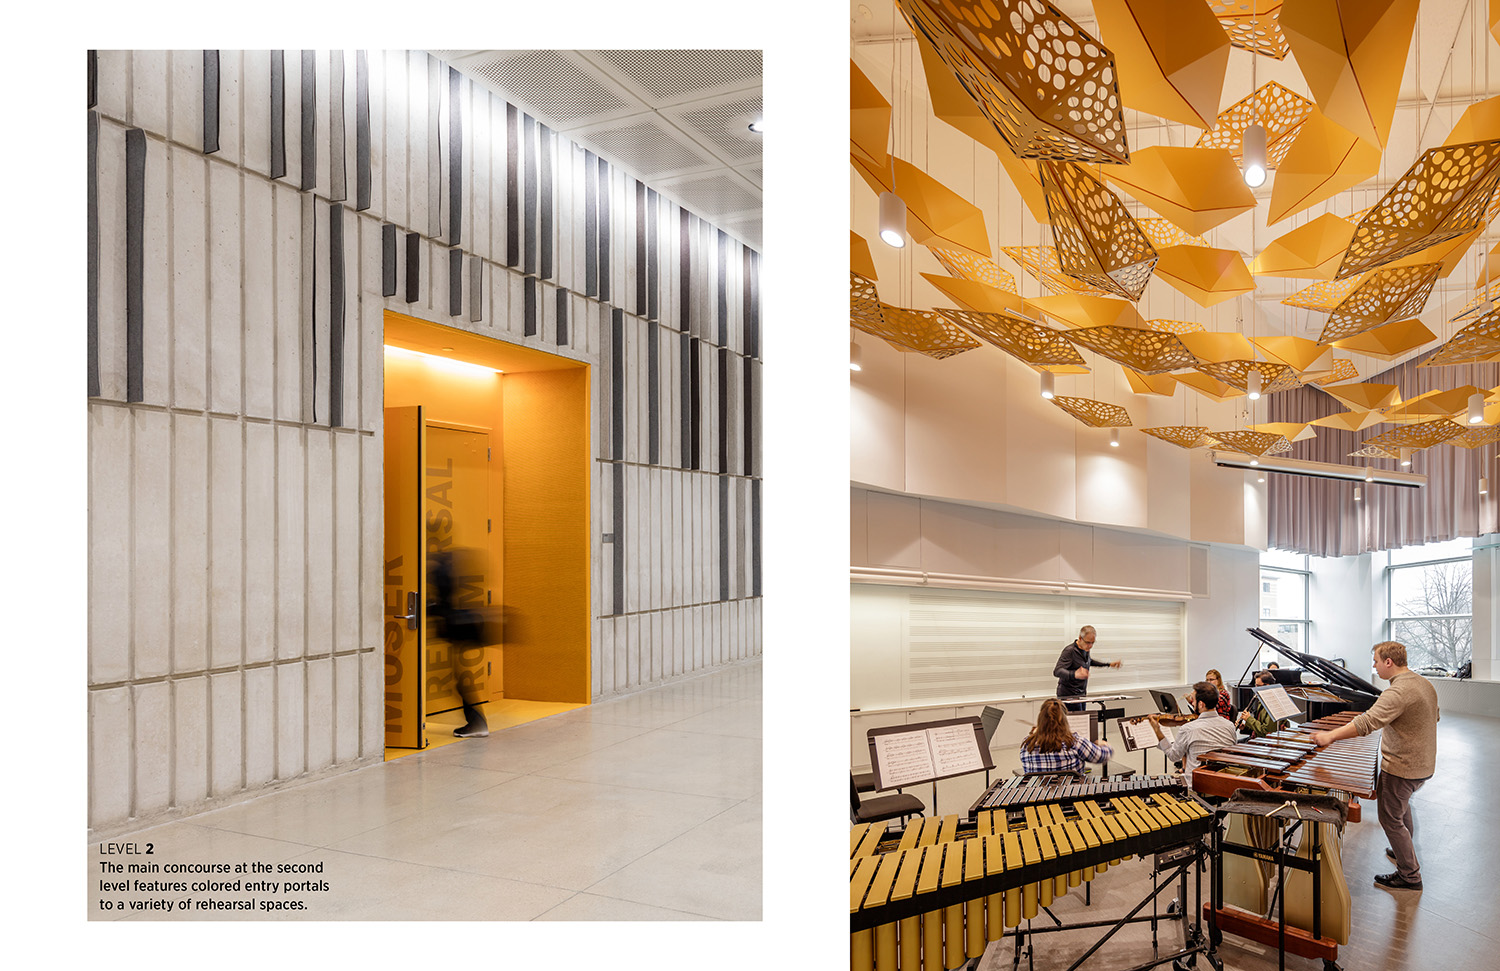 The main concourse at the second level features colored entry portals to a variety of rehearsal spaces. Tim Griffith